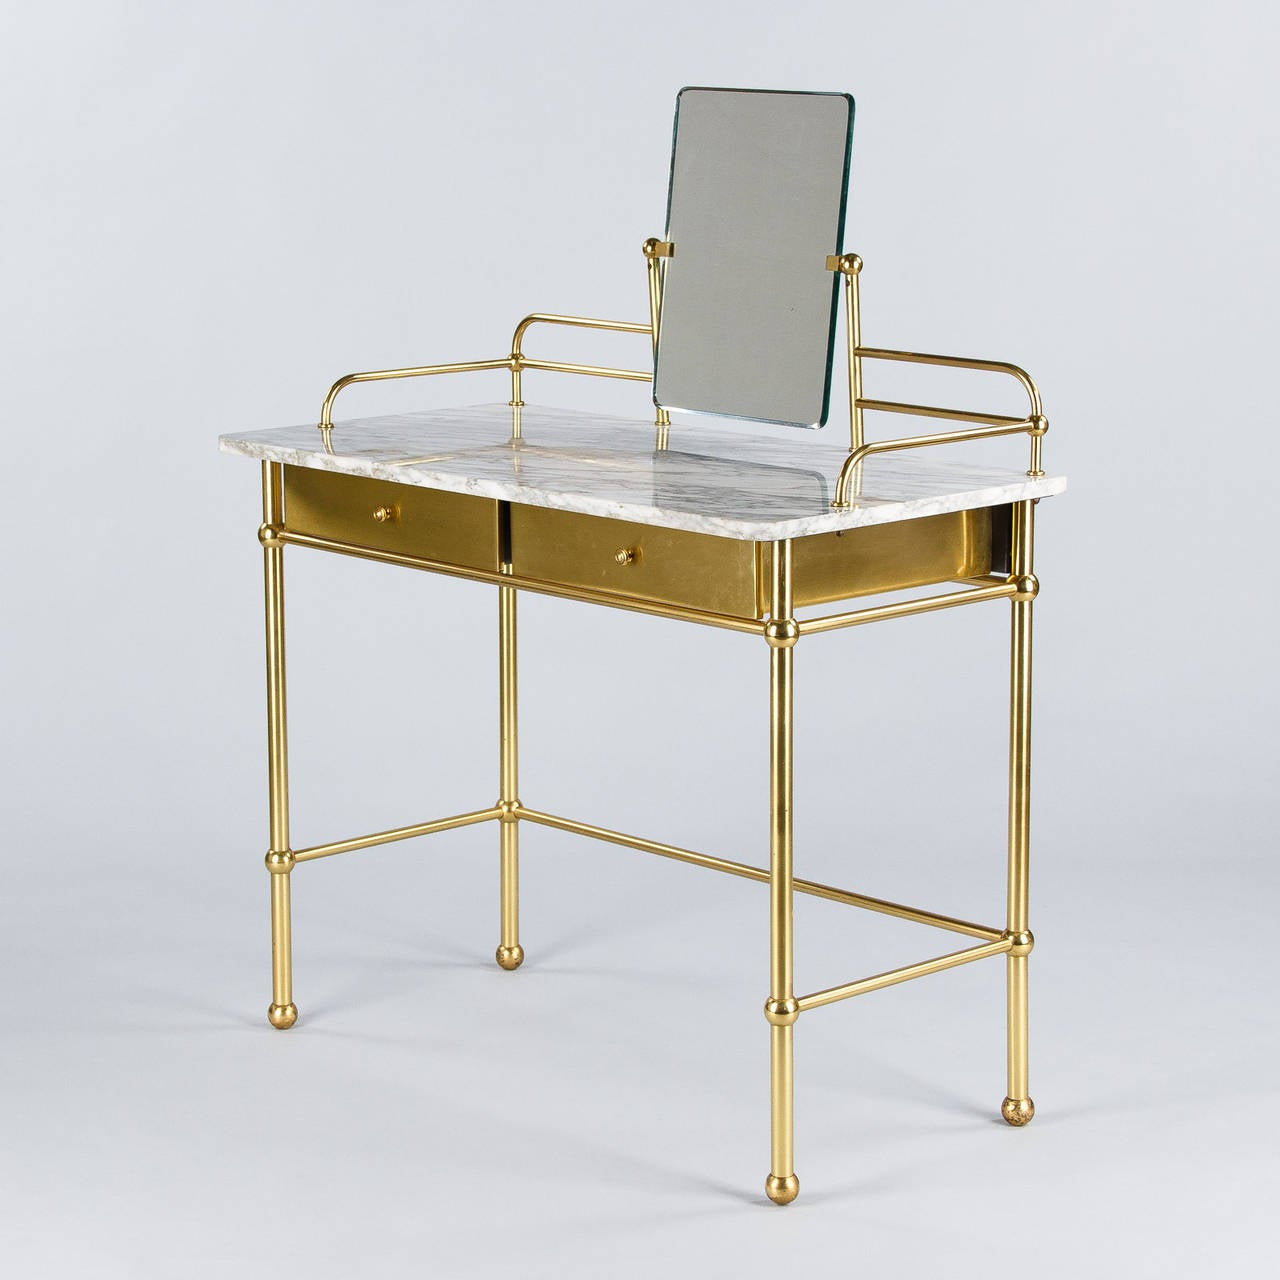 Vintage French Brass And Marble Vanity Table With Stool By